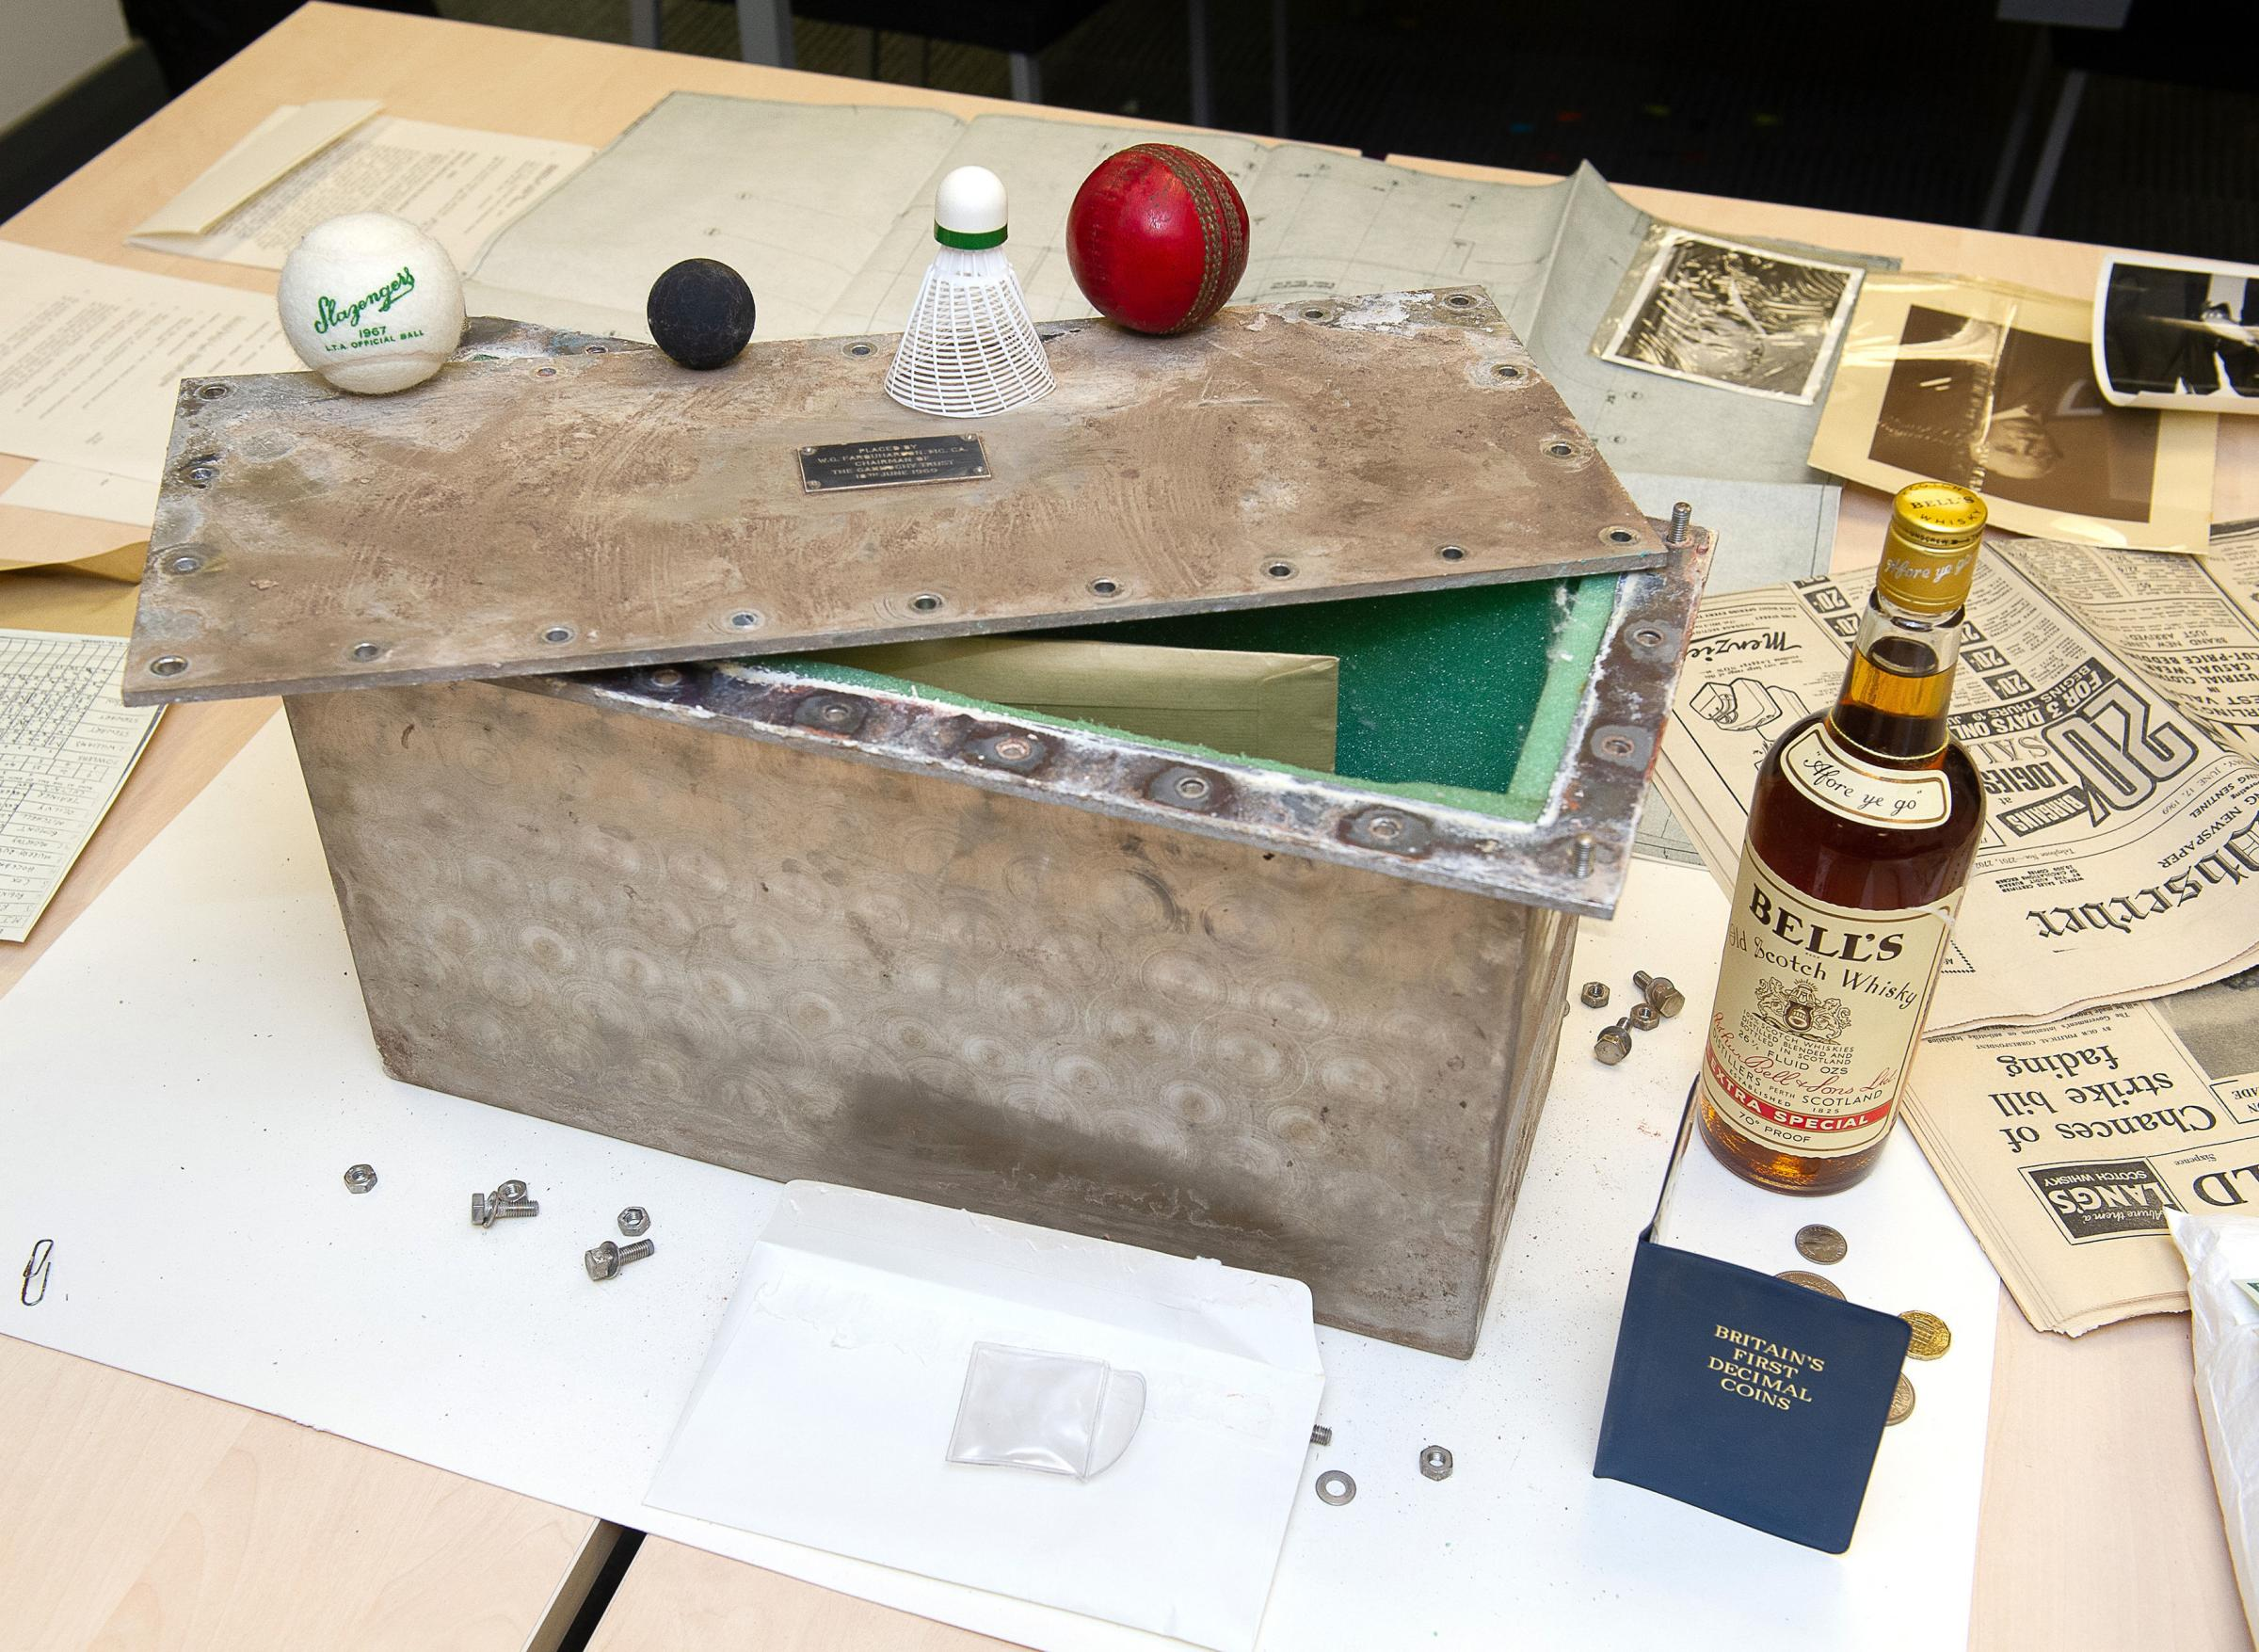 The time capsule include sporting items and a bottle of whisky